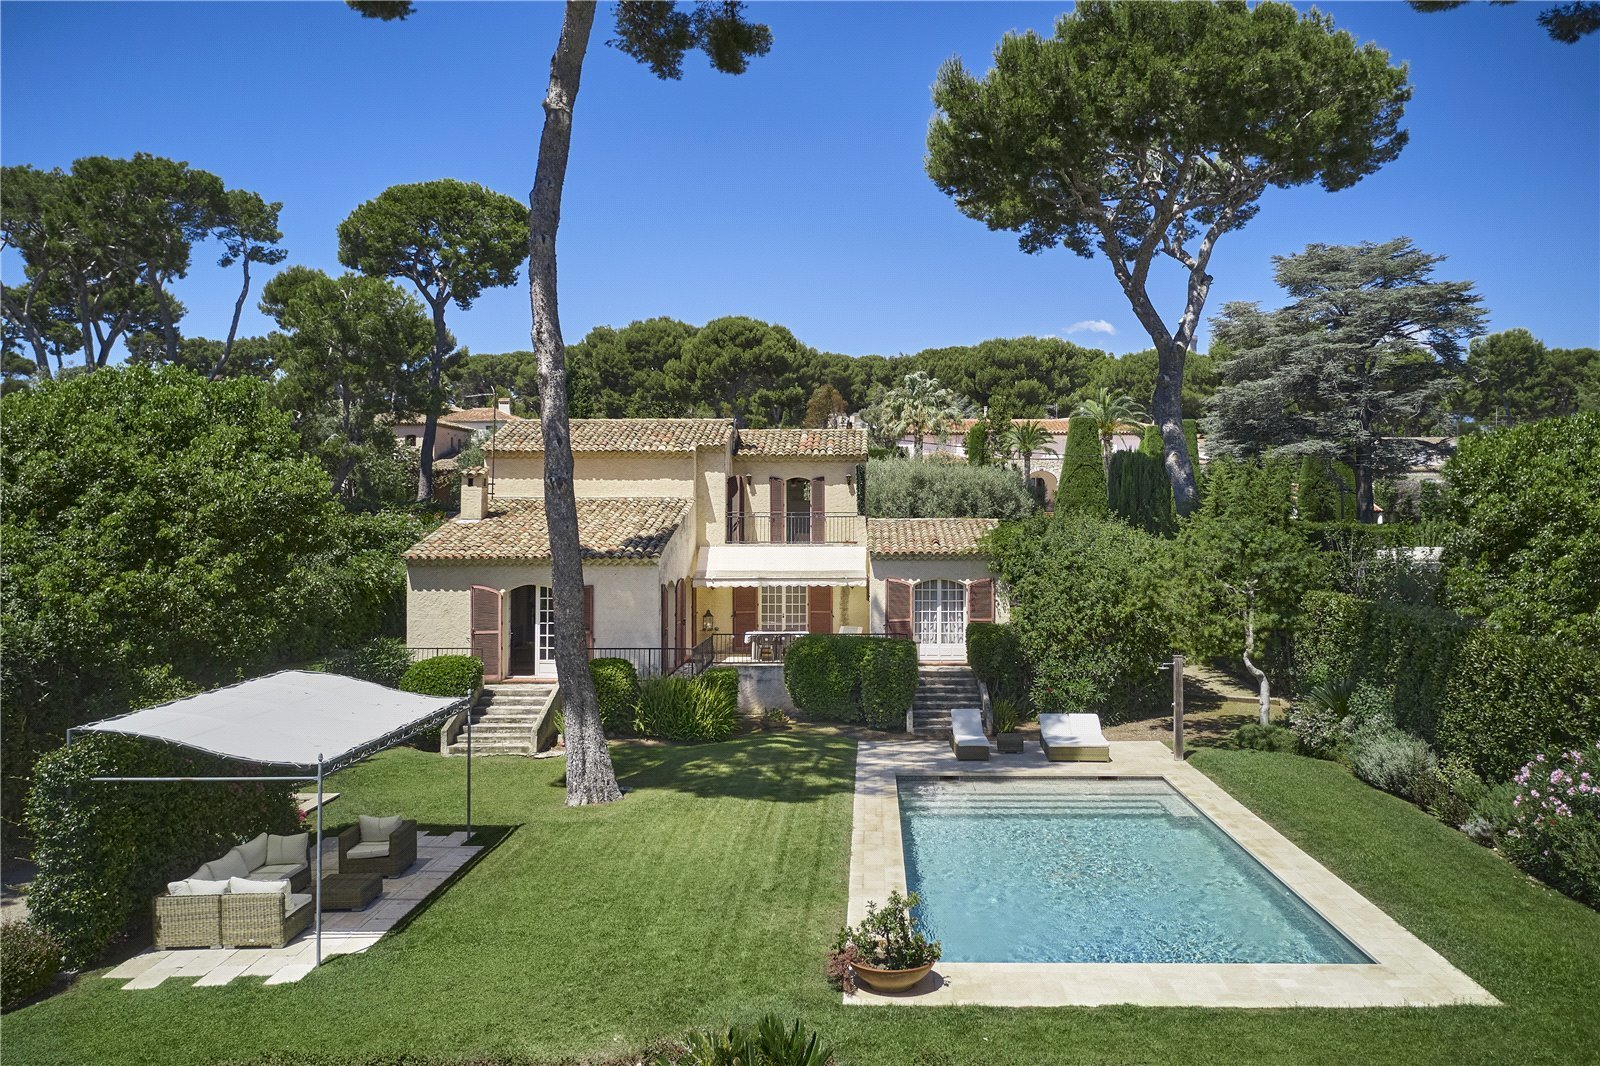 Buying Villa Cap d'Antibes SOLE AGENT. Four bedroom villa, benefiting from a superb sea view and a landscaped garden with pool and carport. Strong potential for renovation.